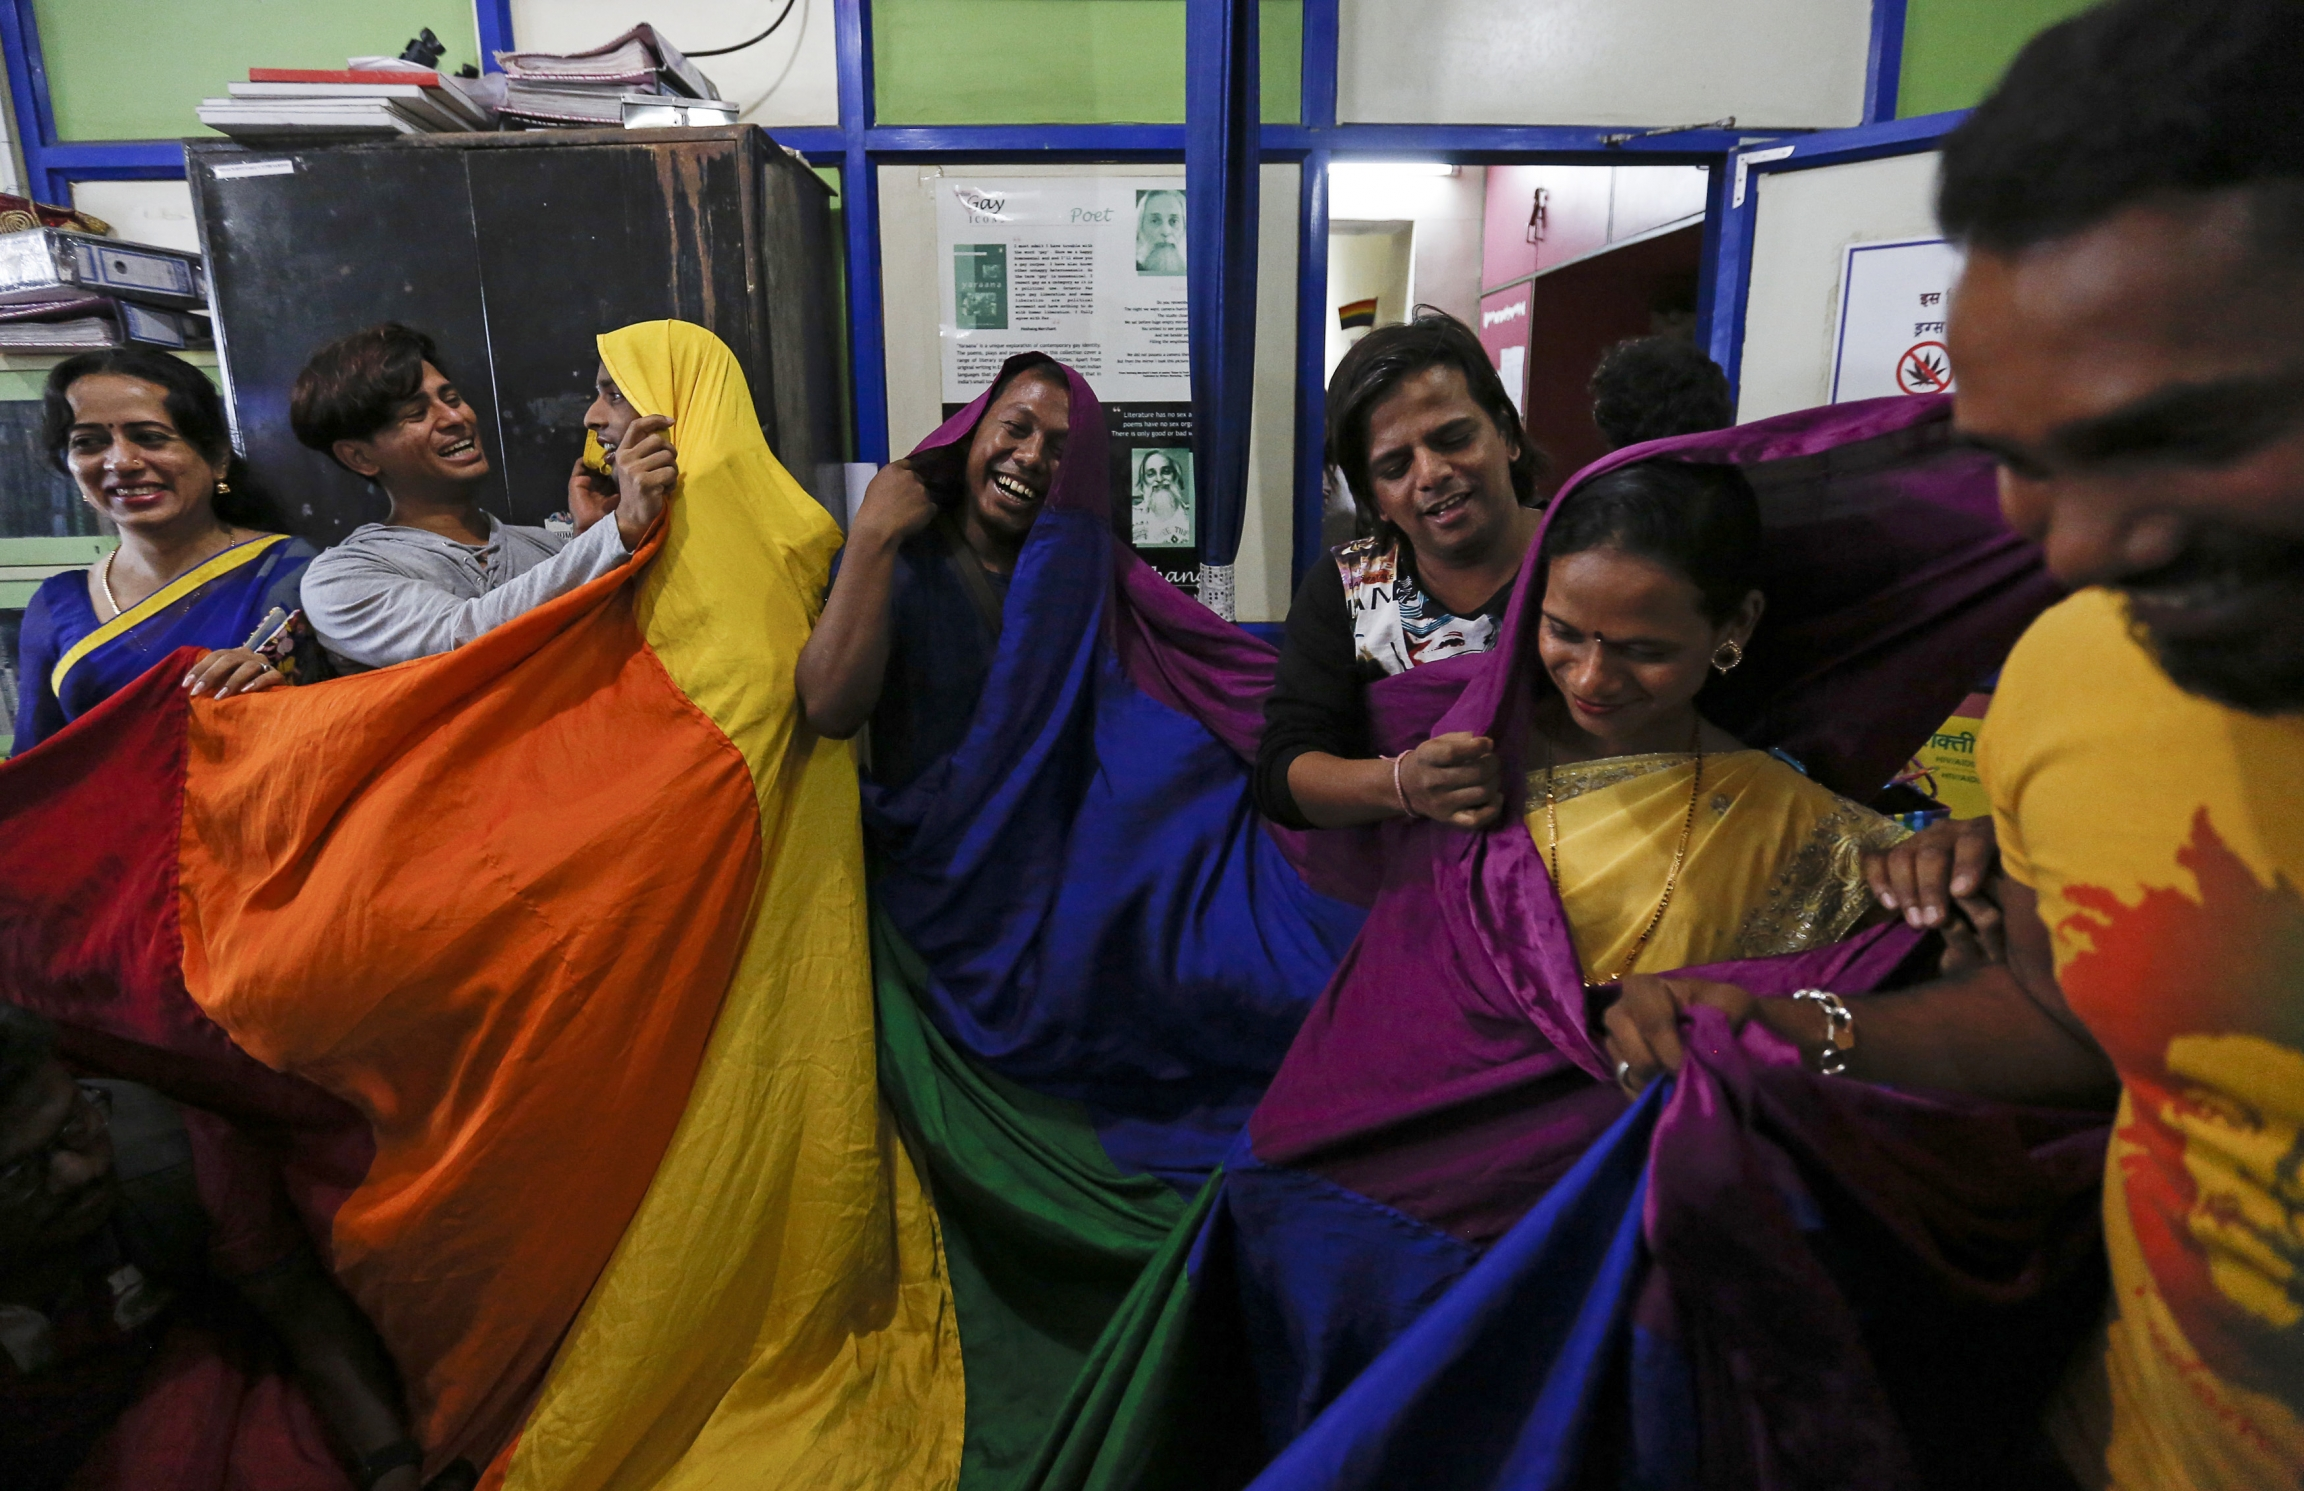 Gay rights activists in India celebrate and cover themselves in rainbow flags.